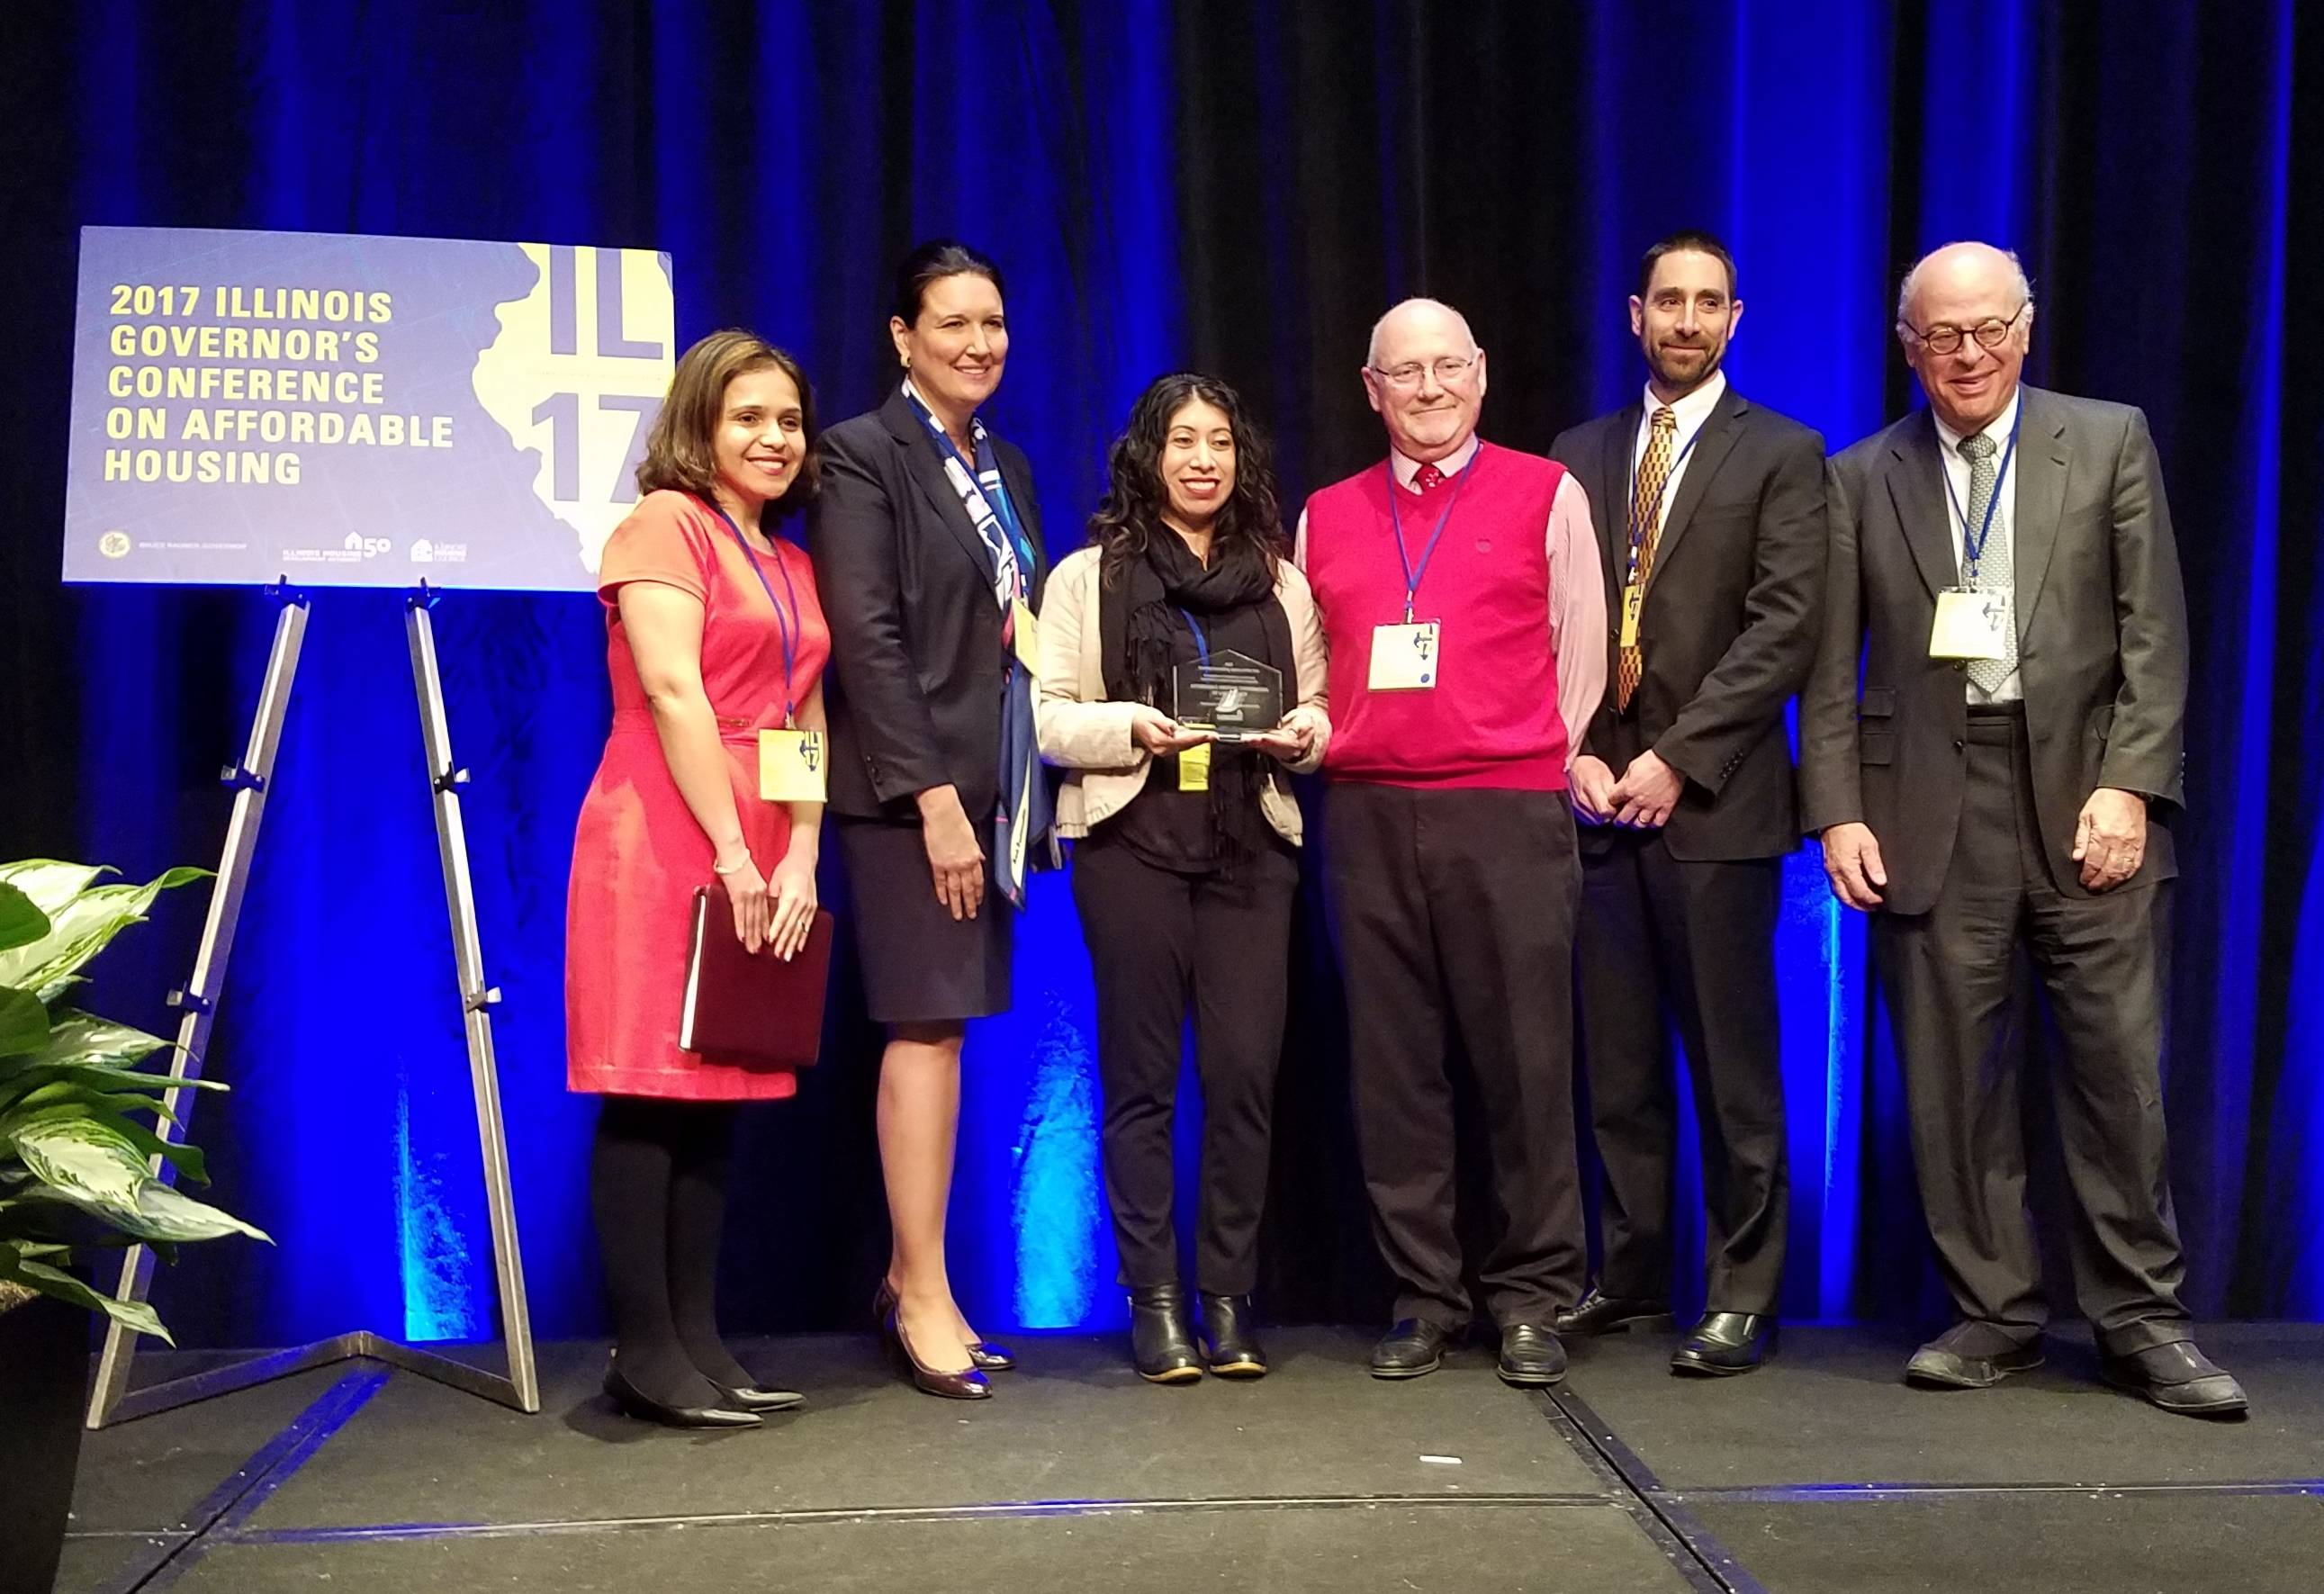 Affordable Housing Corporation of Lake County was presented the 2017 IL Housing Counseling Agency of the Year Award by the Illinois Housing Development Authority. From left: IHDA Assistant Director of Community Affairs Monica Enriquez, IHDA Director of Community Affairs Nicki Pecori Fioretti, AHC Director of Housing Services Laura Olvera, AHC Director of Real Estate Services Mike Mader, AHC Executive Director Rob Anthony, and IHDA Board Chair King Harris at the Hyatt Regency in Chicago